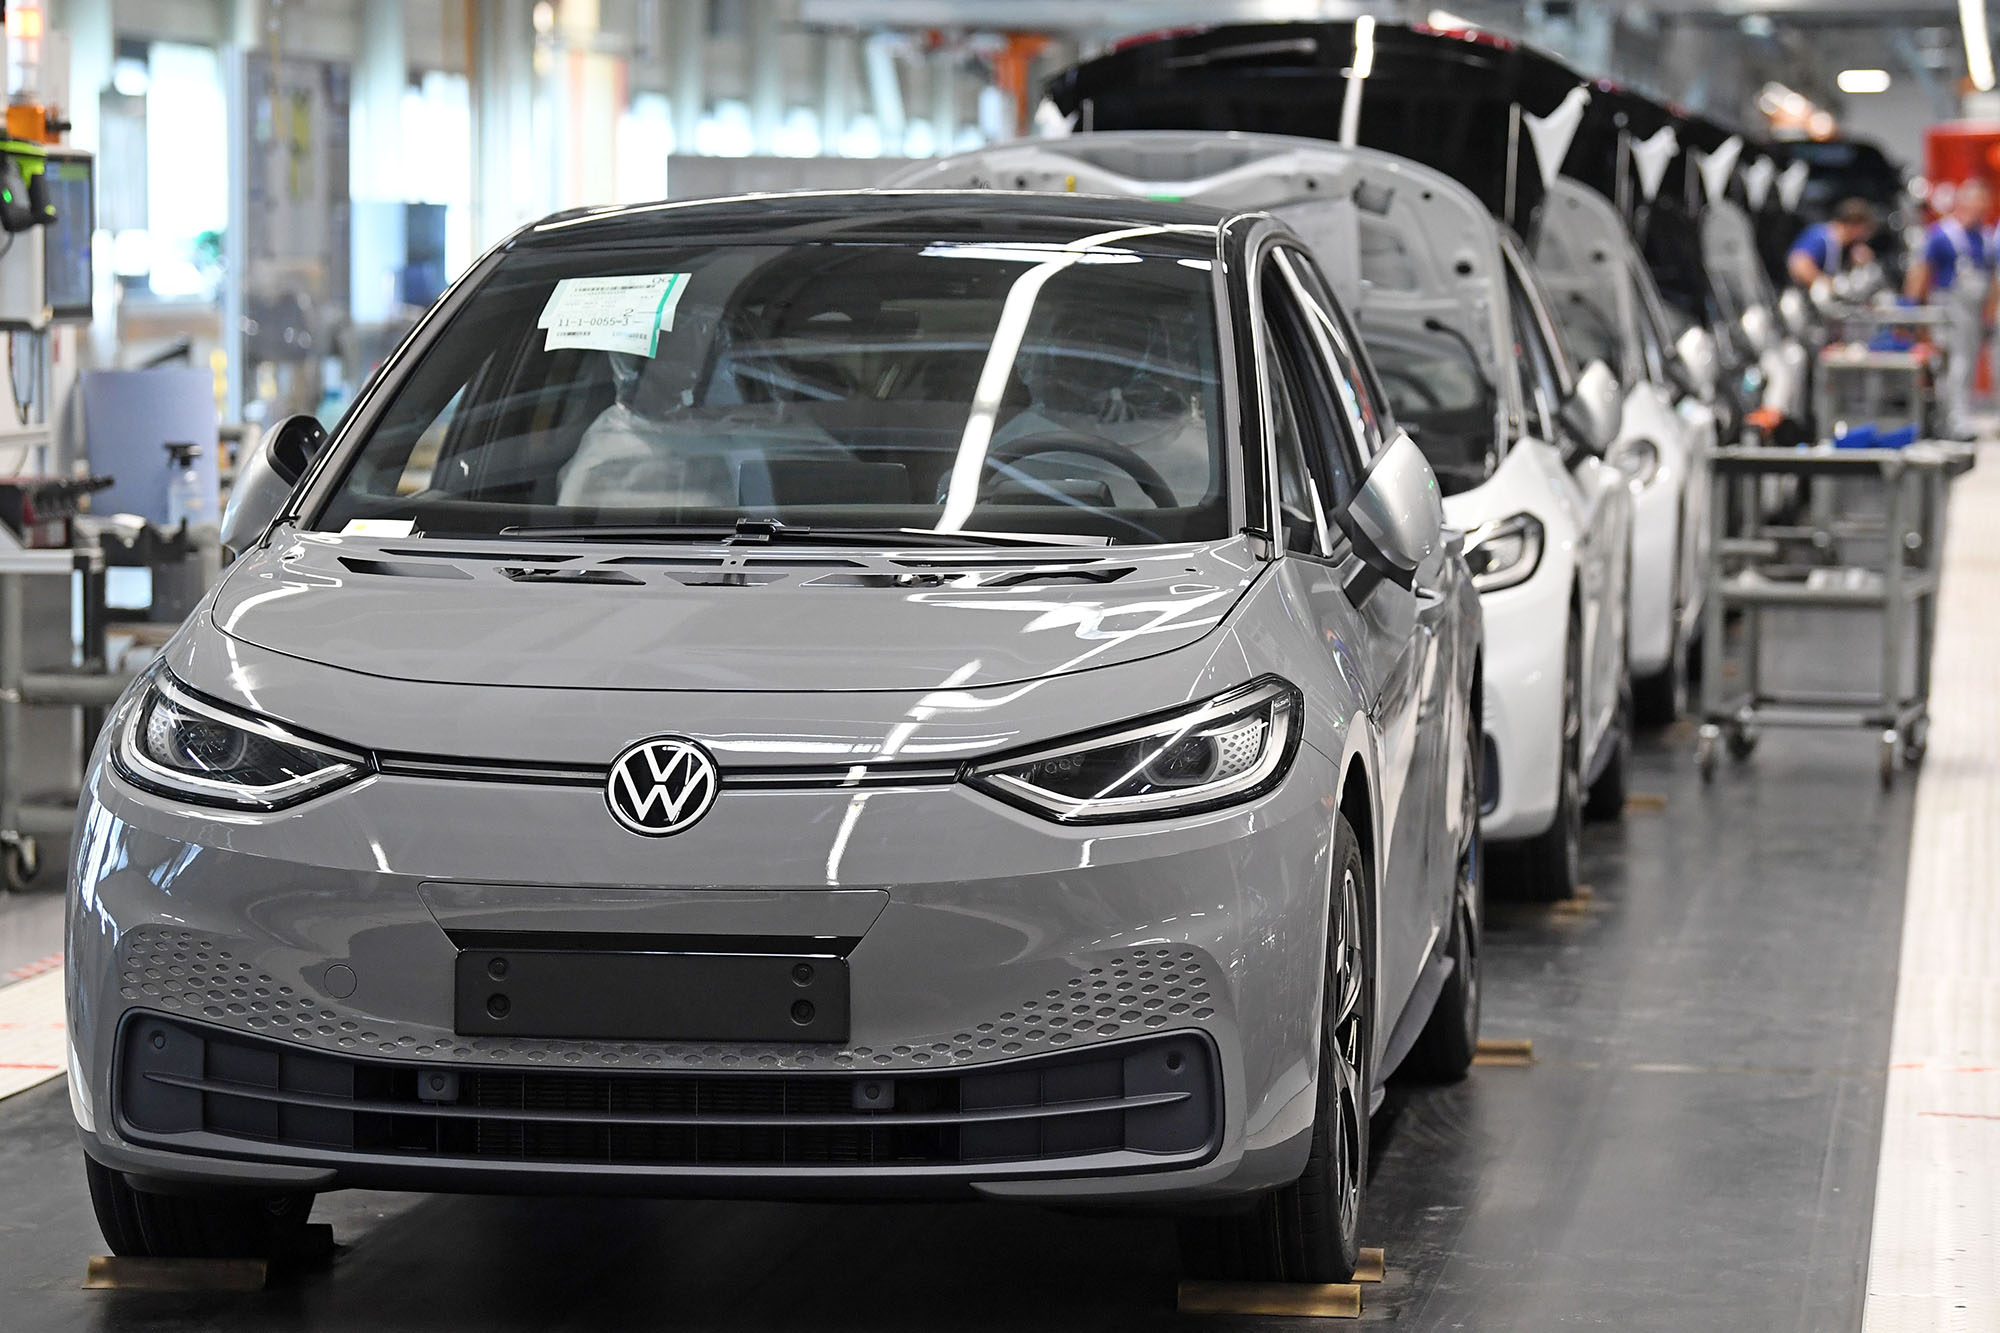 Volkswagen Electric Car Gets Poor Review From German Magazine